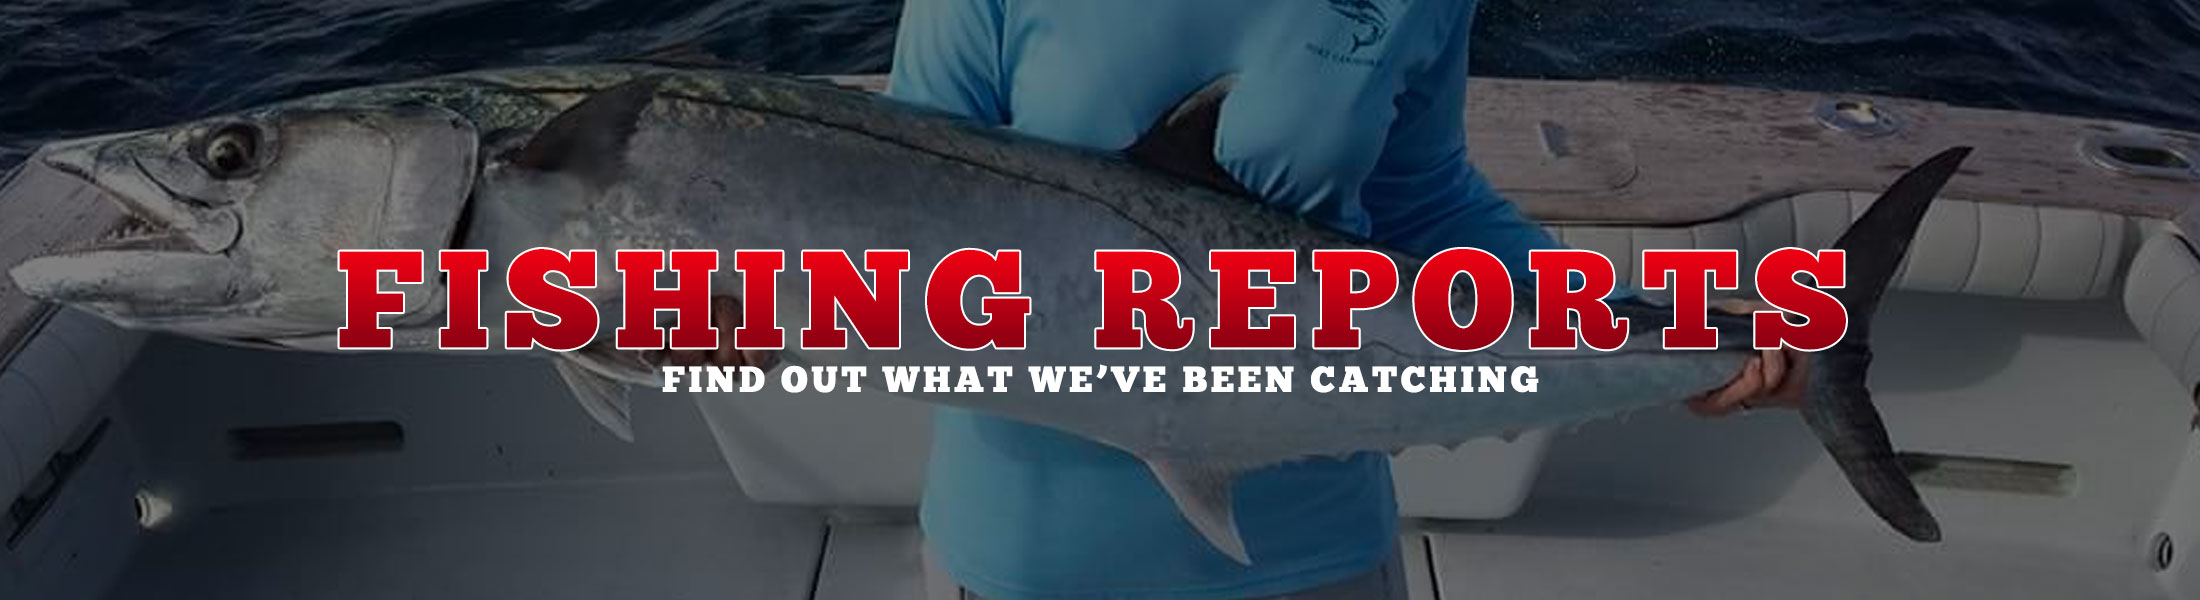 Fishing reports from the Port Canaveral area.